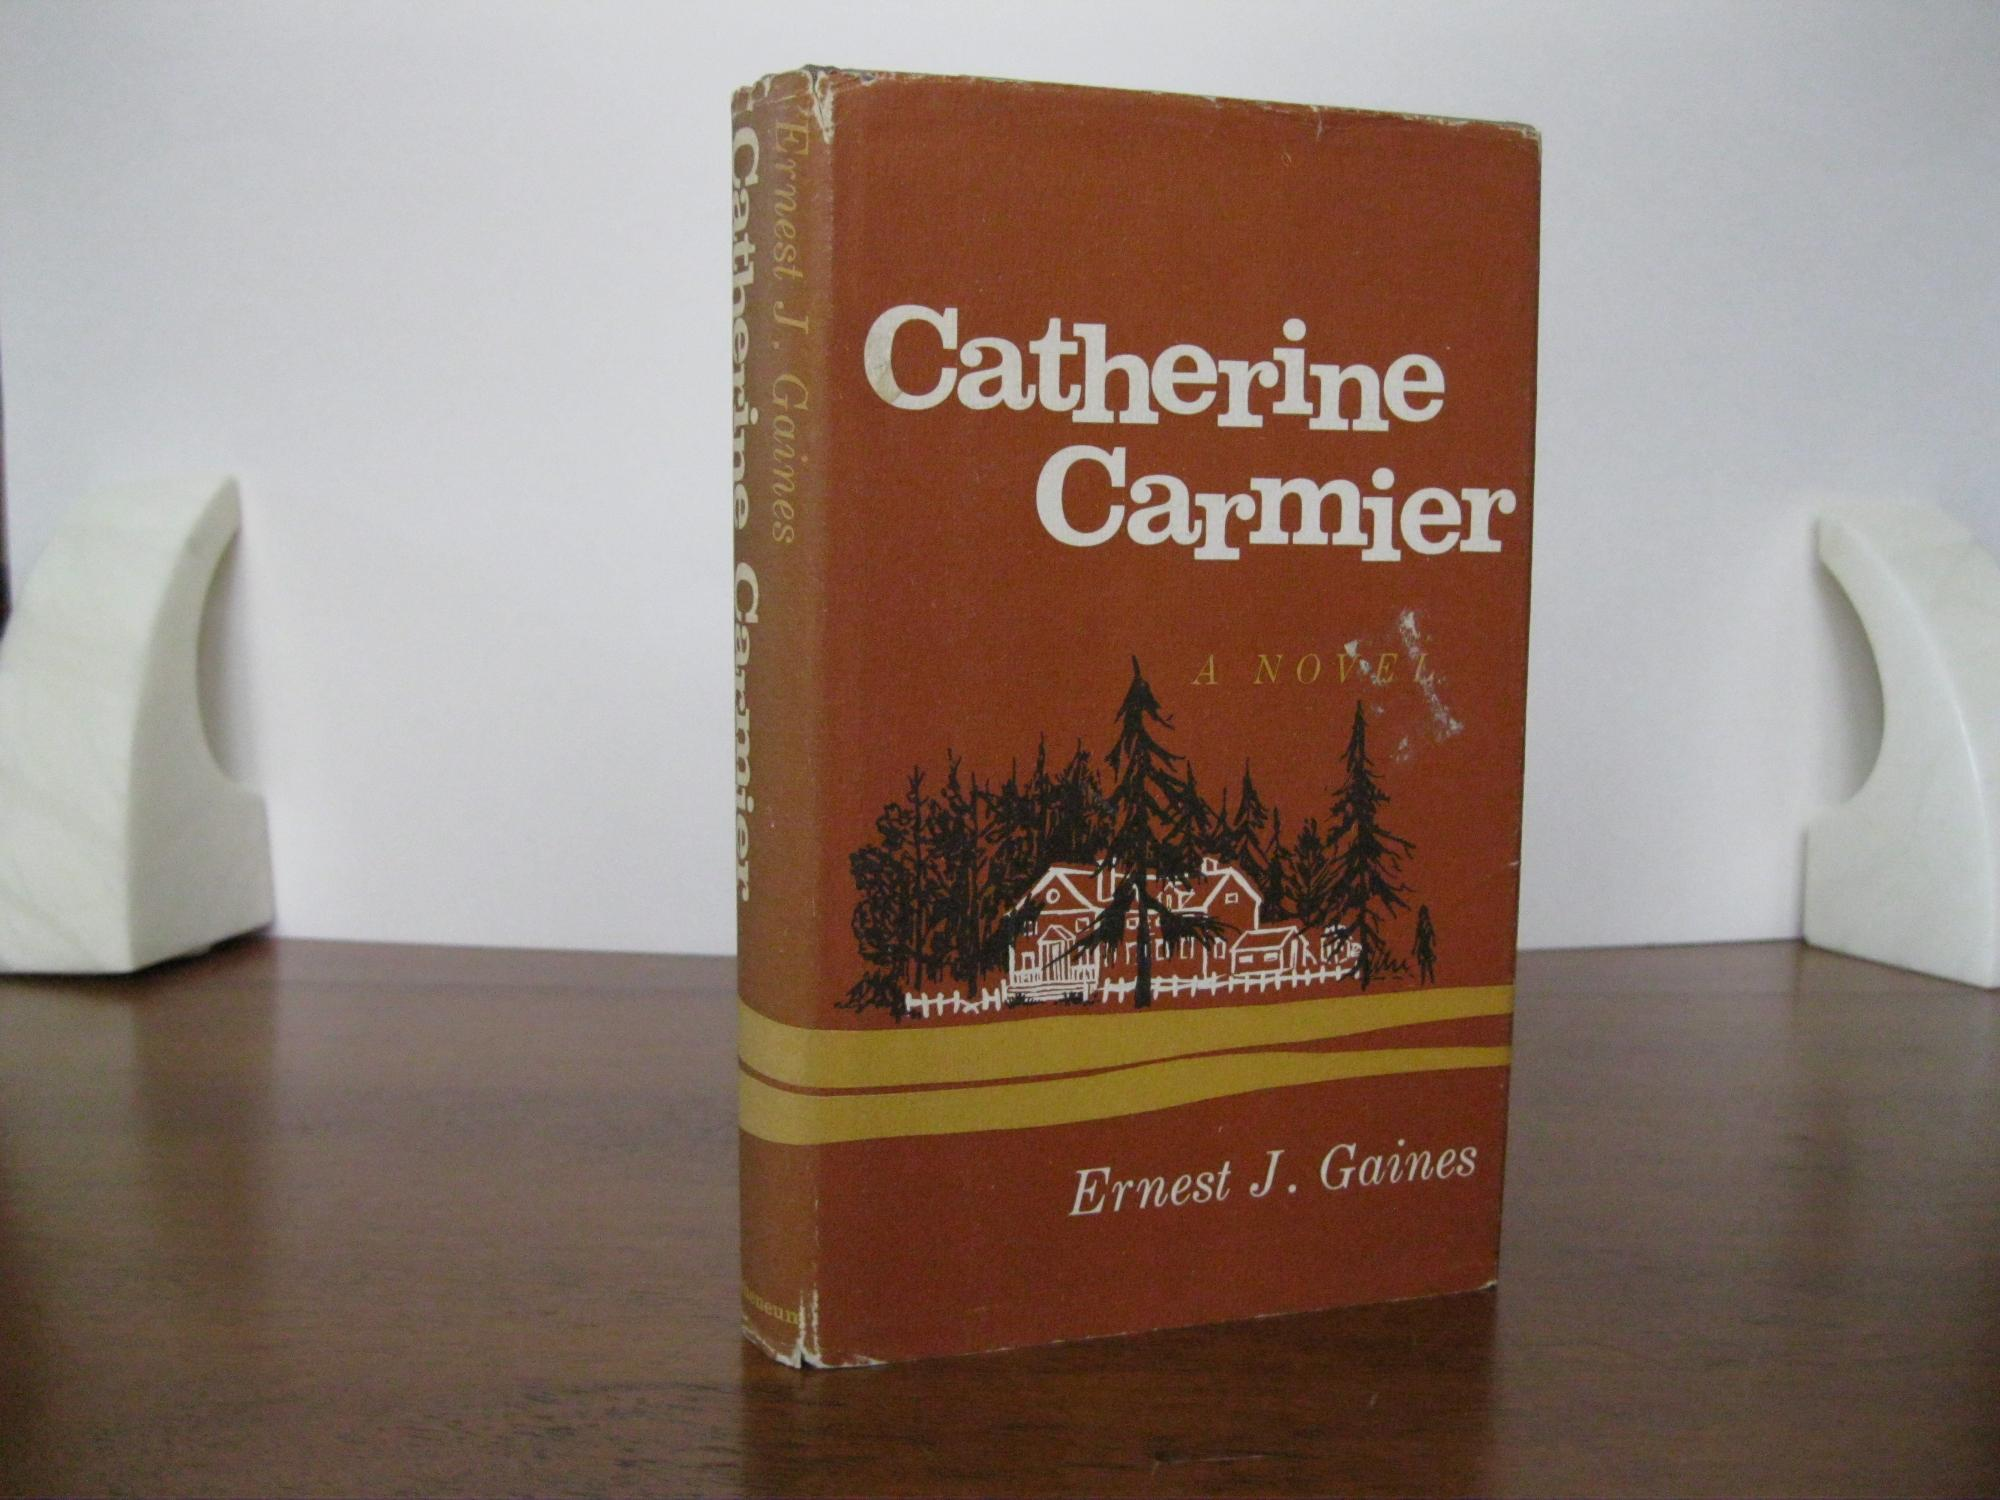 CATHERINE_CARMIER_*SIGNED*_GAINES,_ERNEST_J._[Very_Good]_[Hardcover]